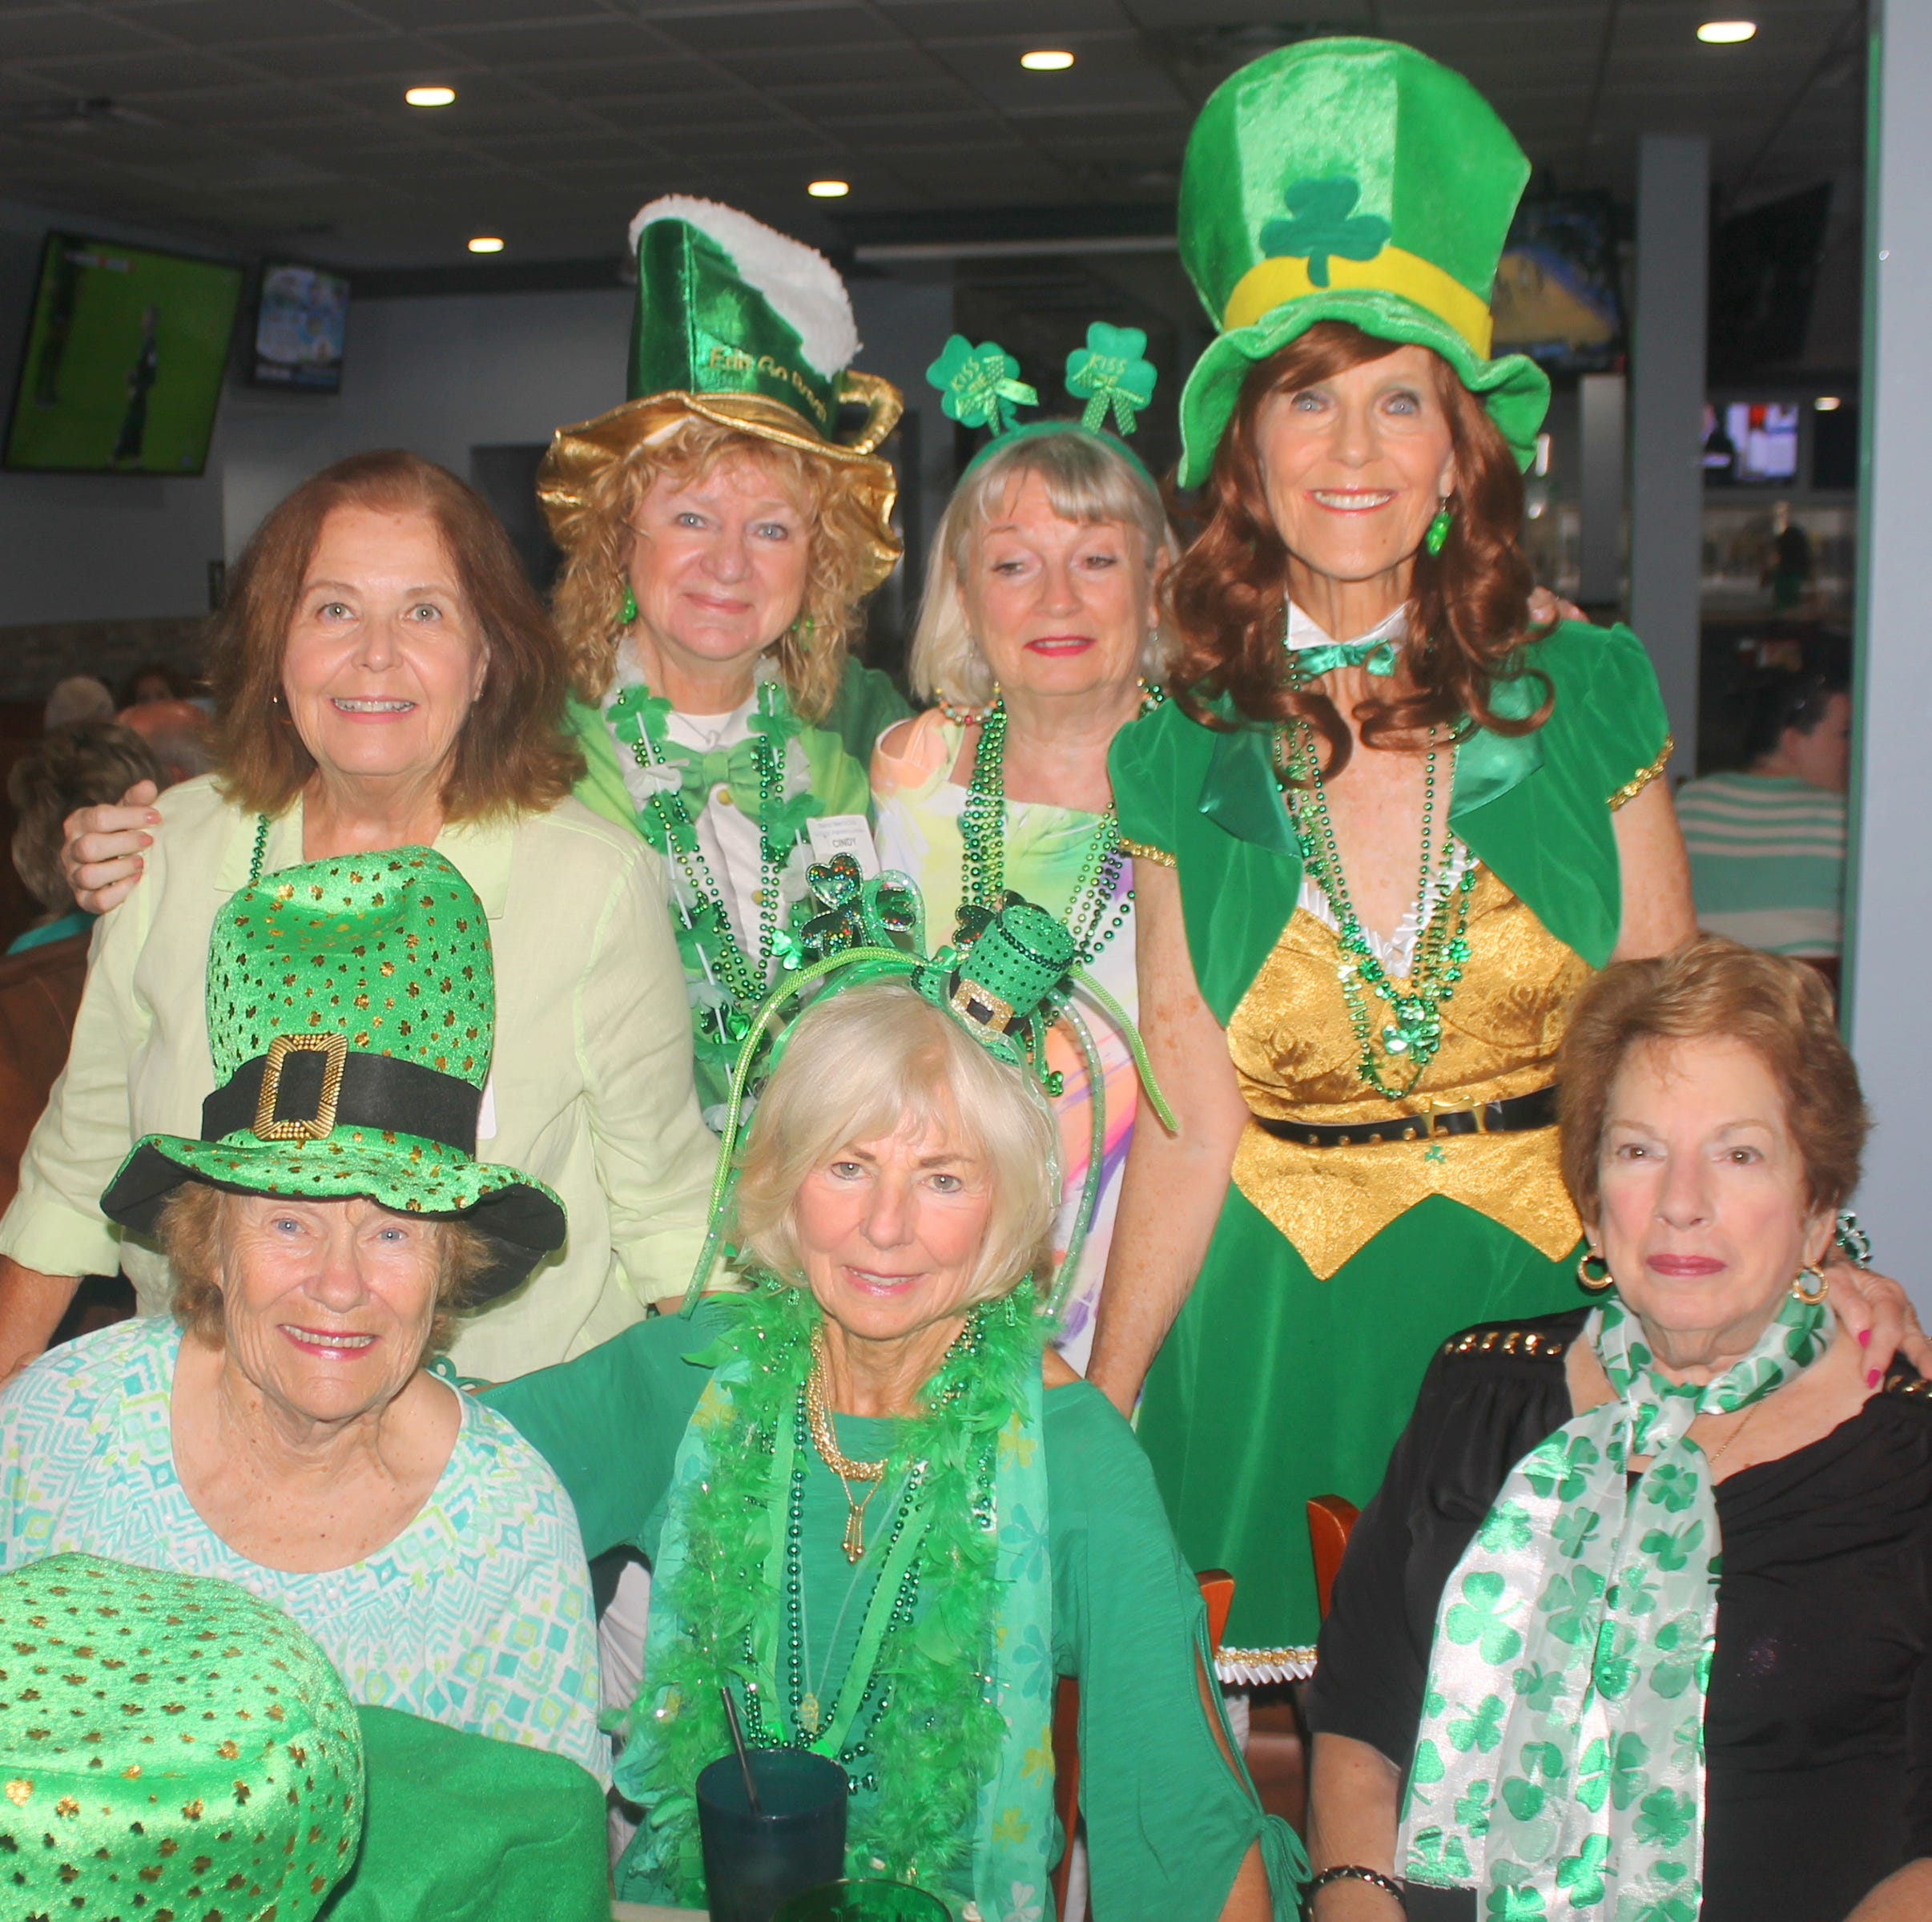 Social Scene: 'Irish for the day'